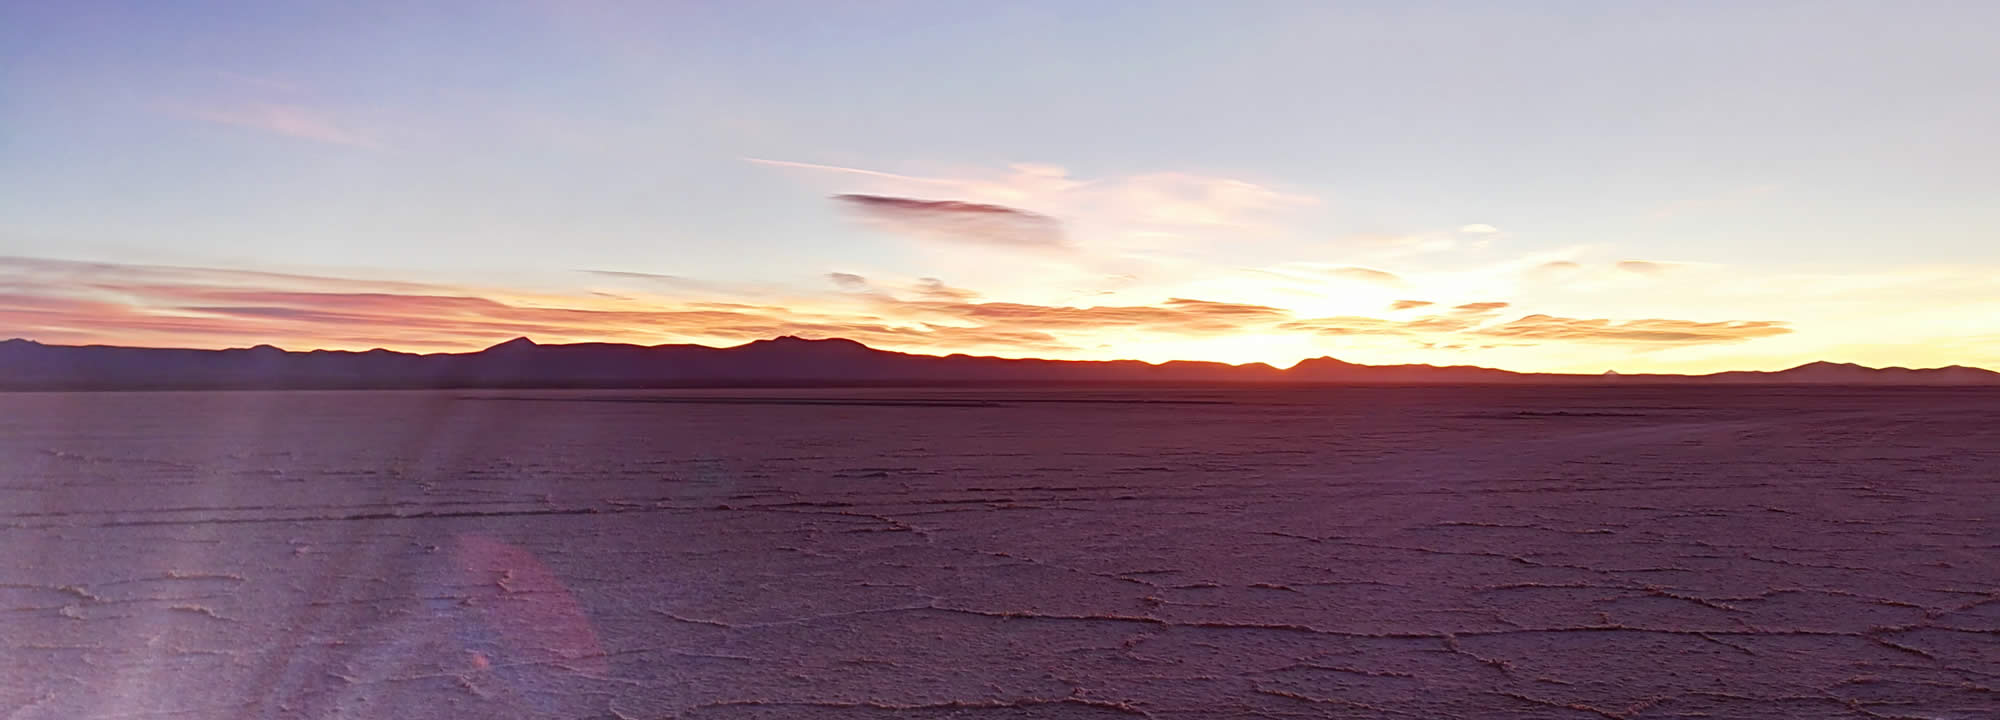 See the Sun rise over the greatest salt flat in the world!